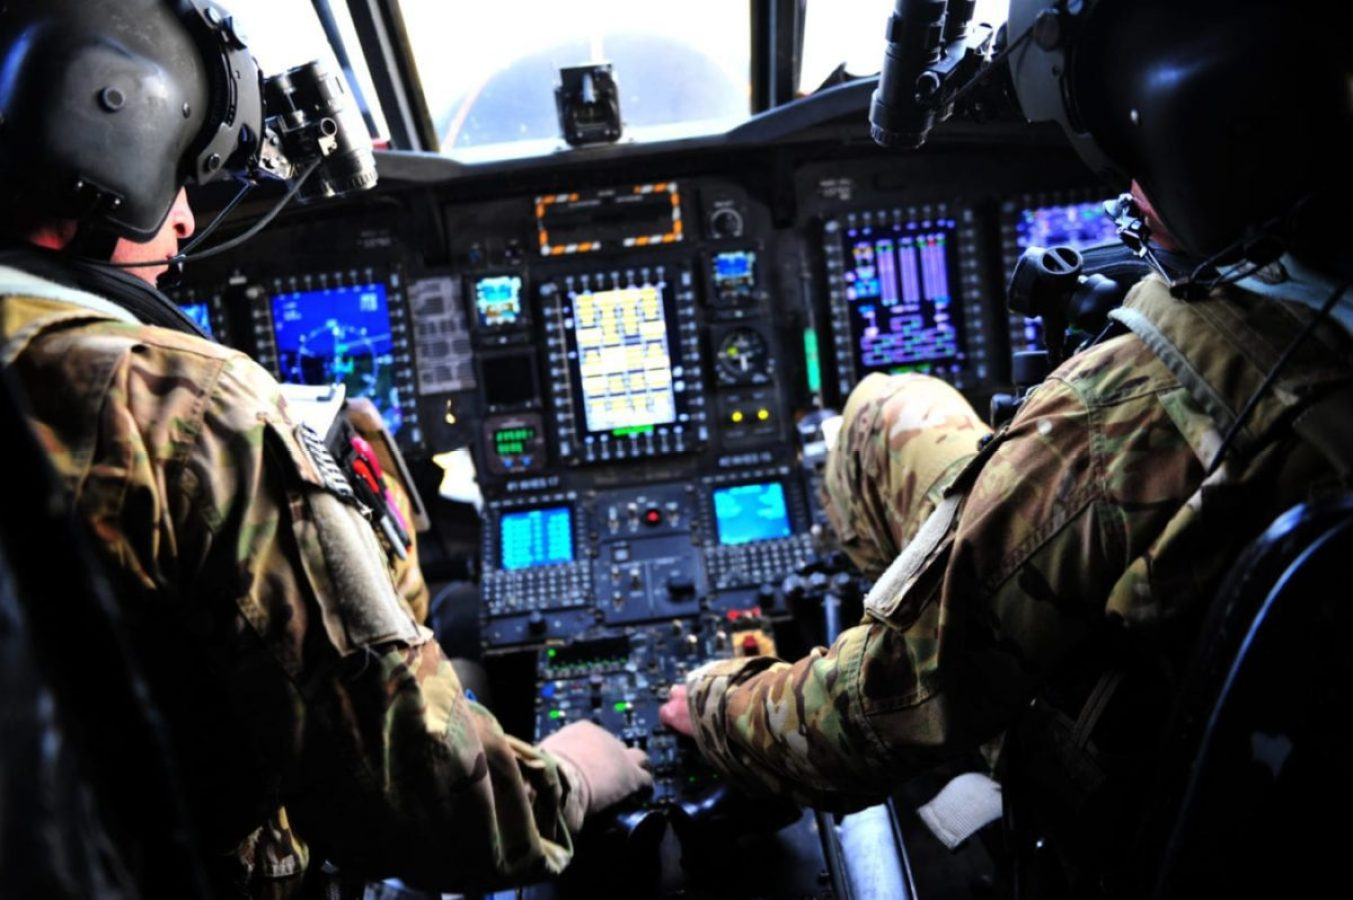 U.S. Army MH-47G Chinook helicopter cockpit